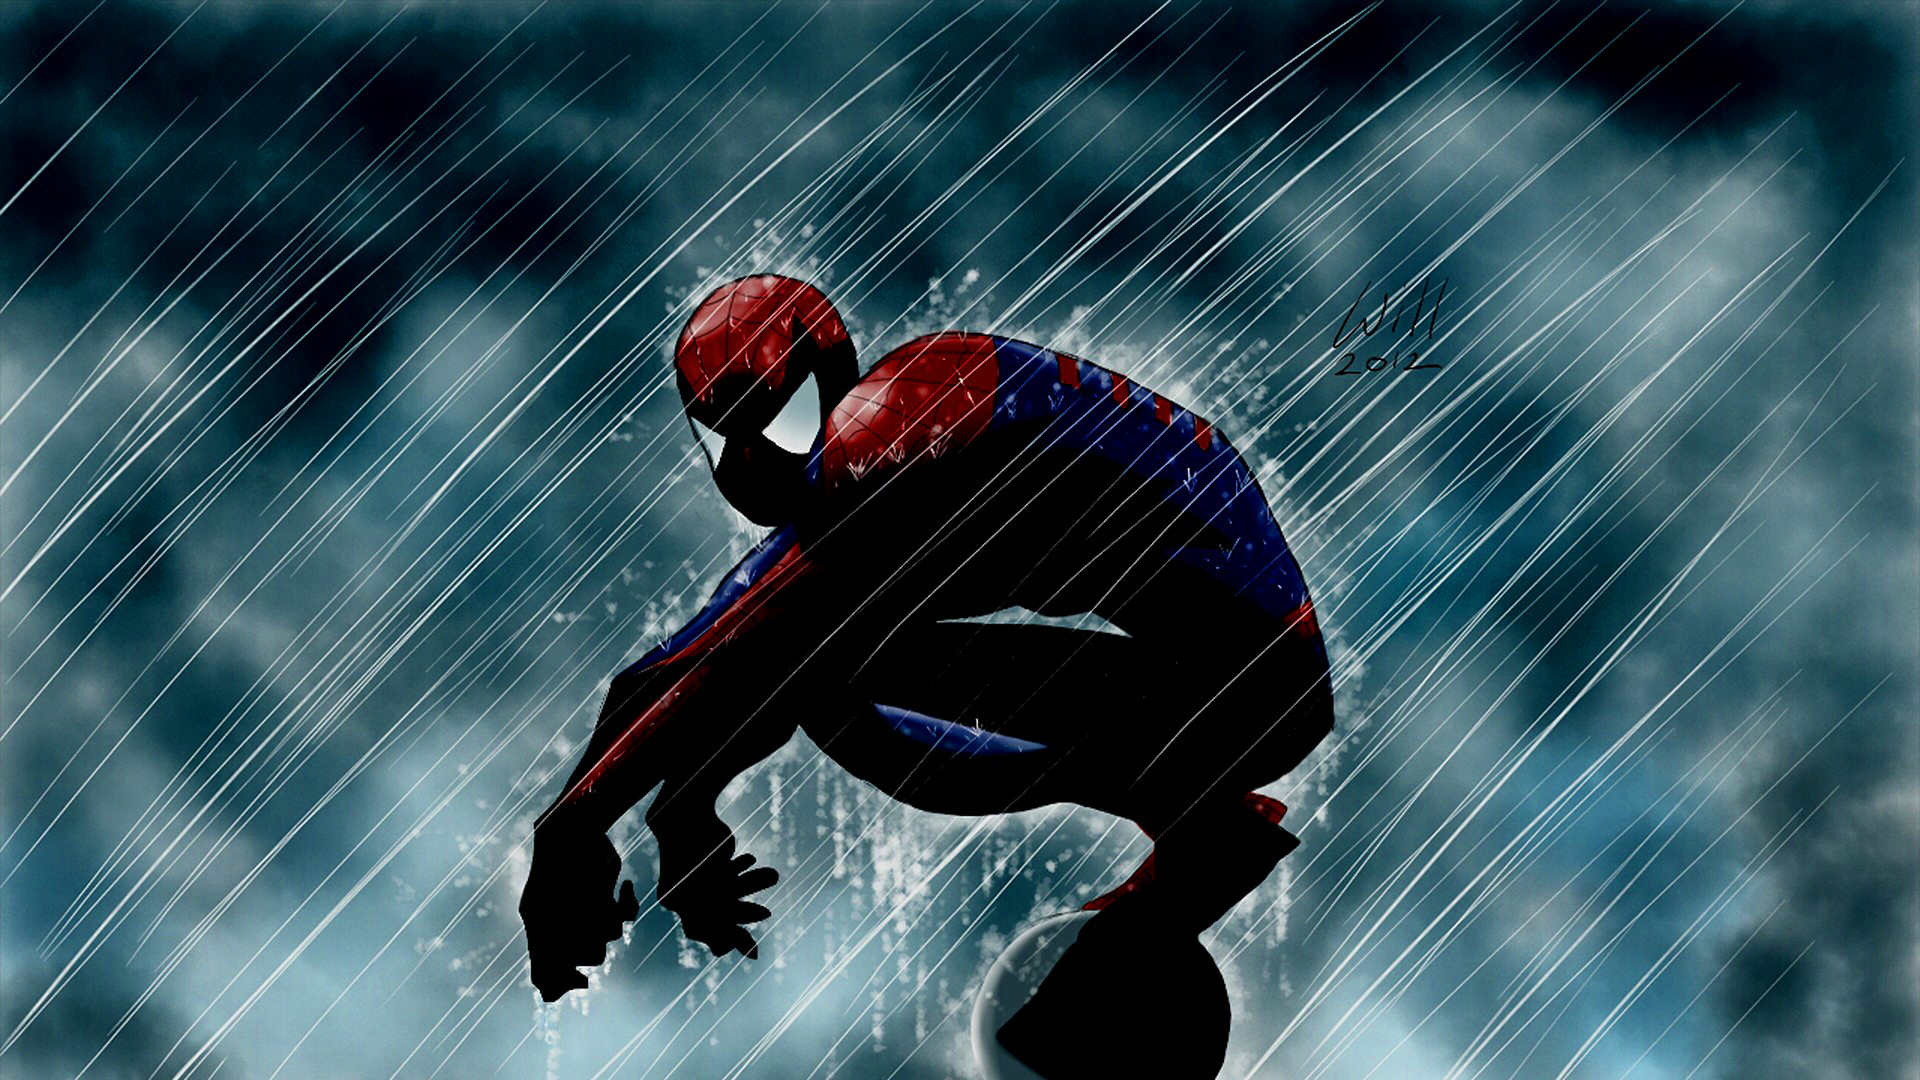 Spiderman art